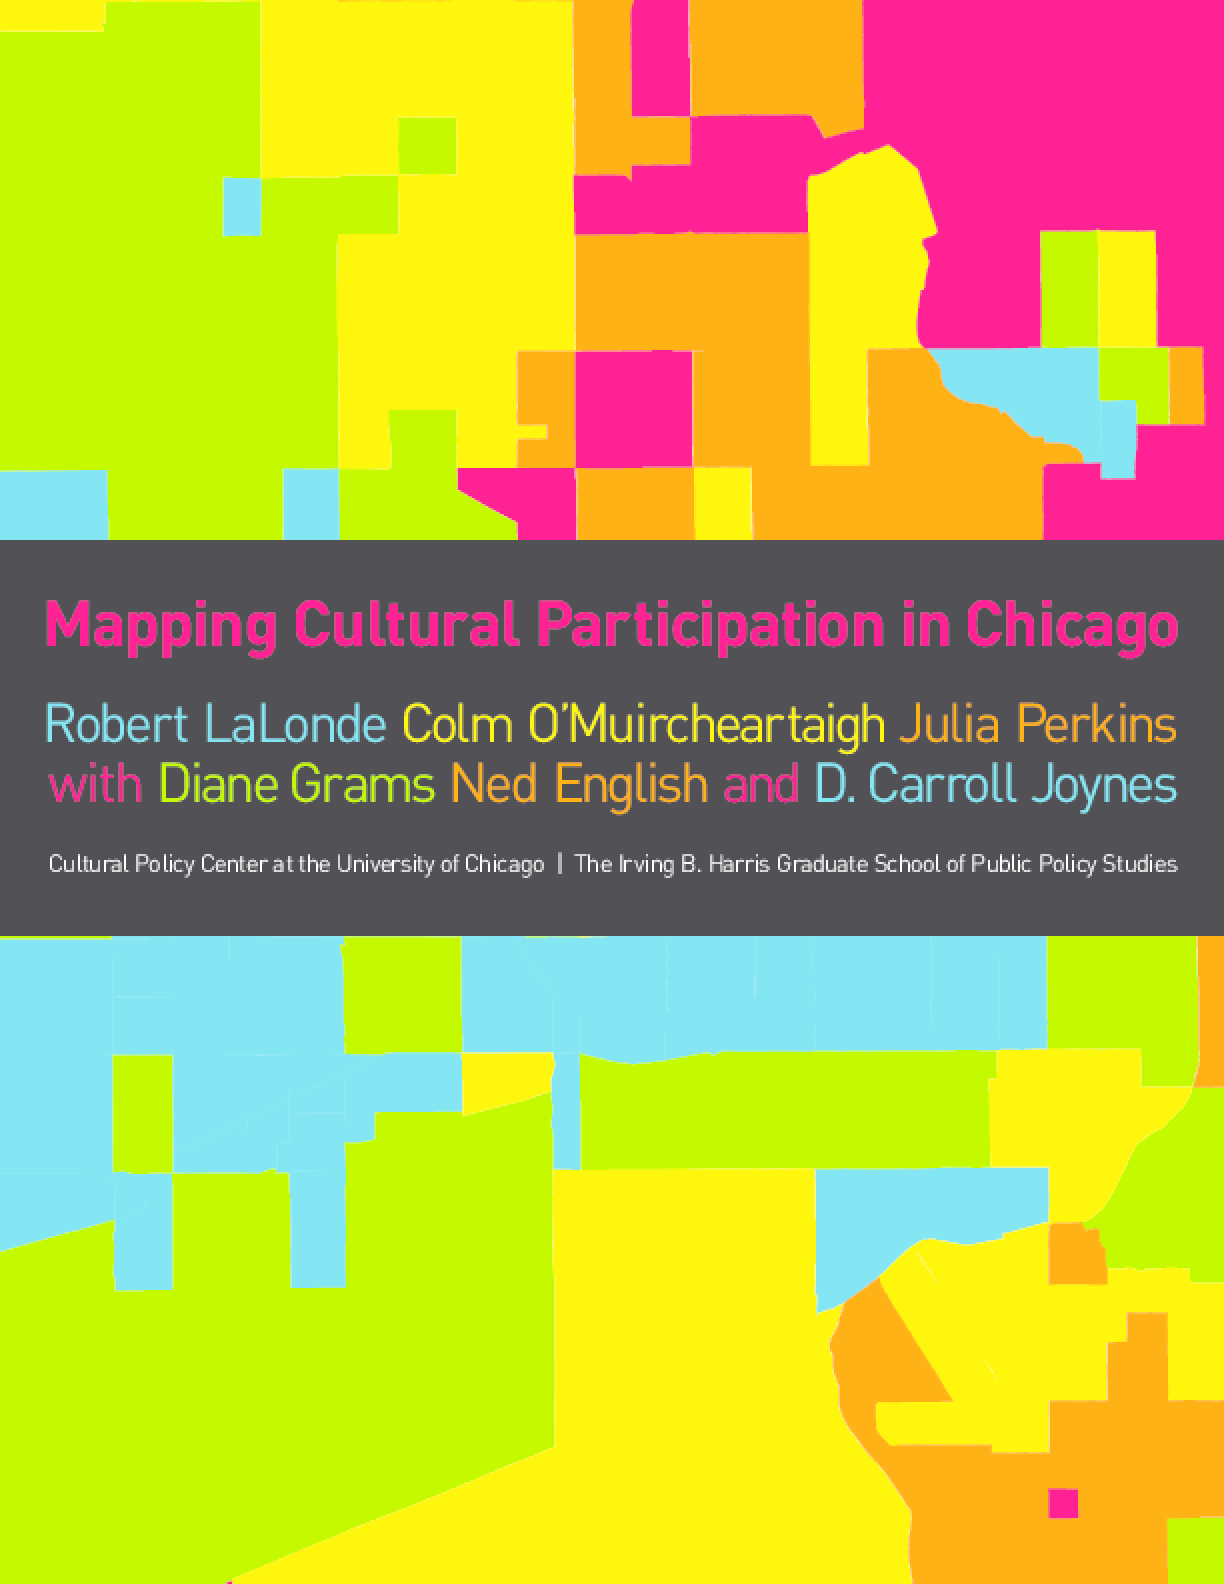 Mapping Cultural Participation in Chicago